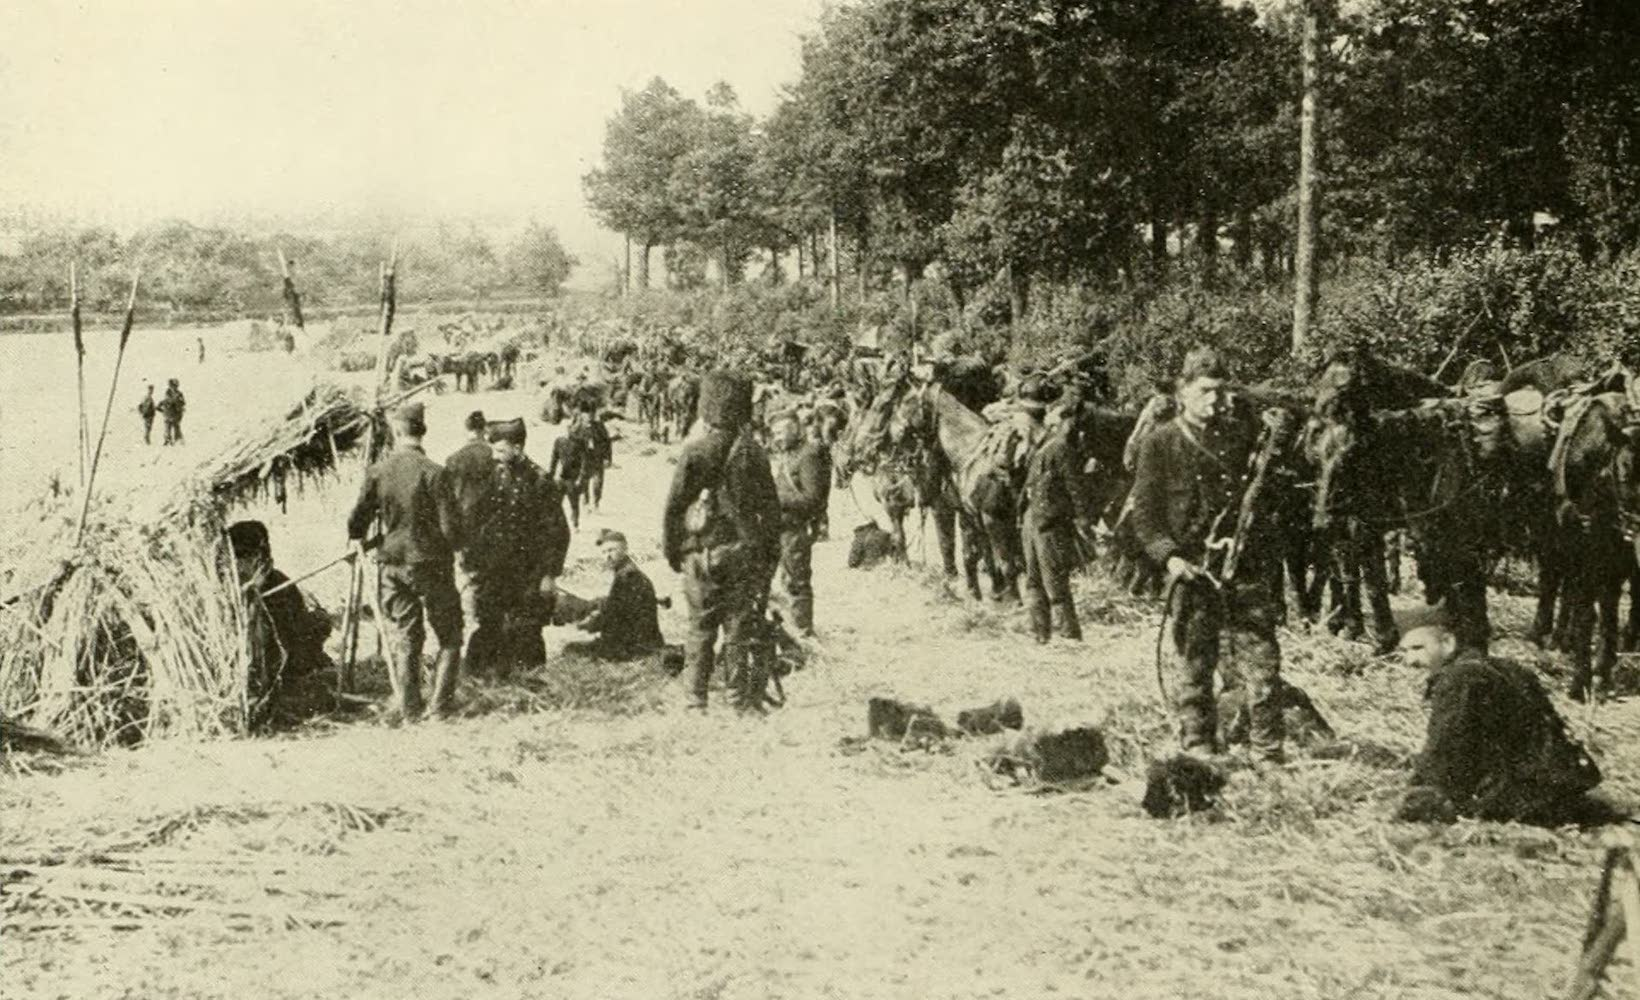 Laird & Lee's World's War Glimpses - A Belgian Camp (1914)